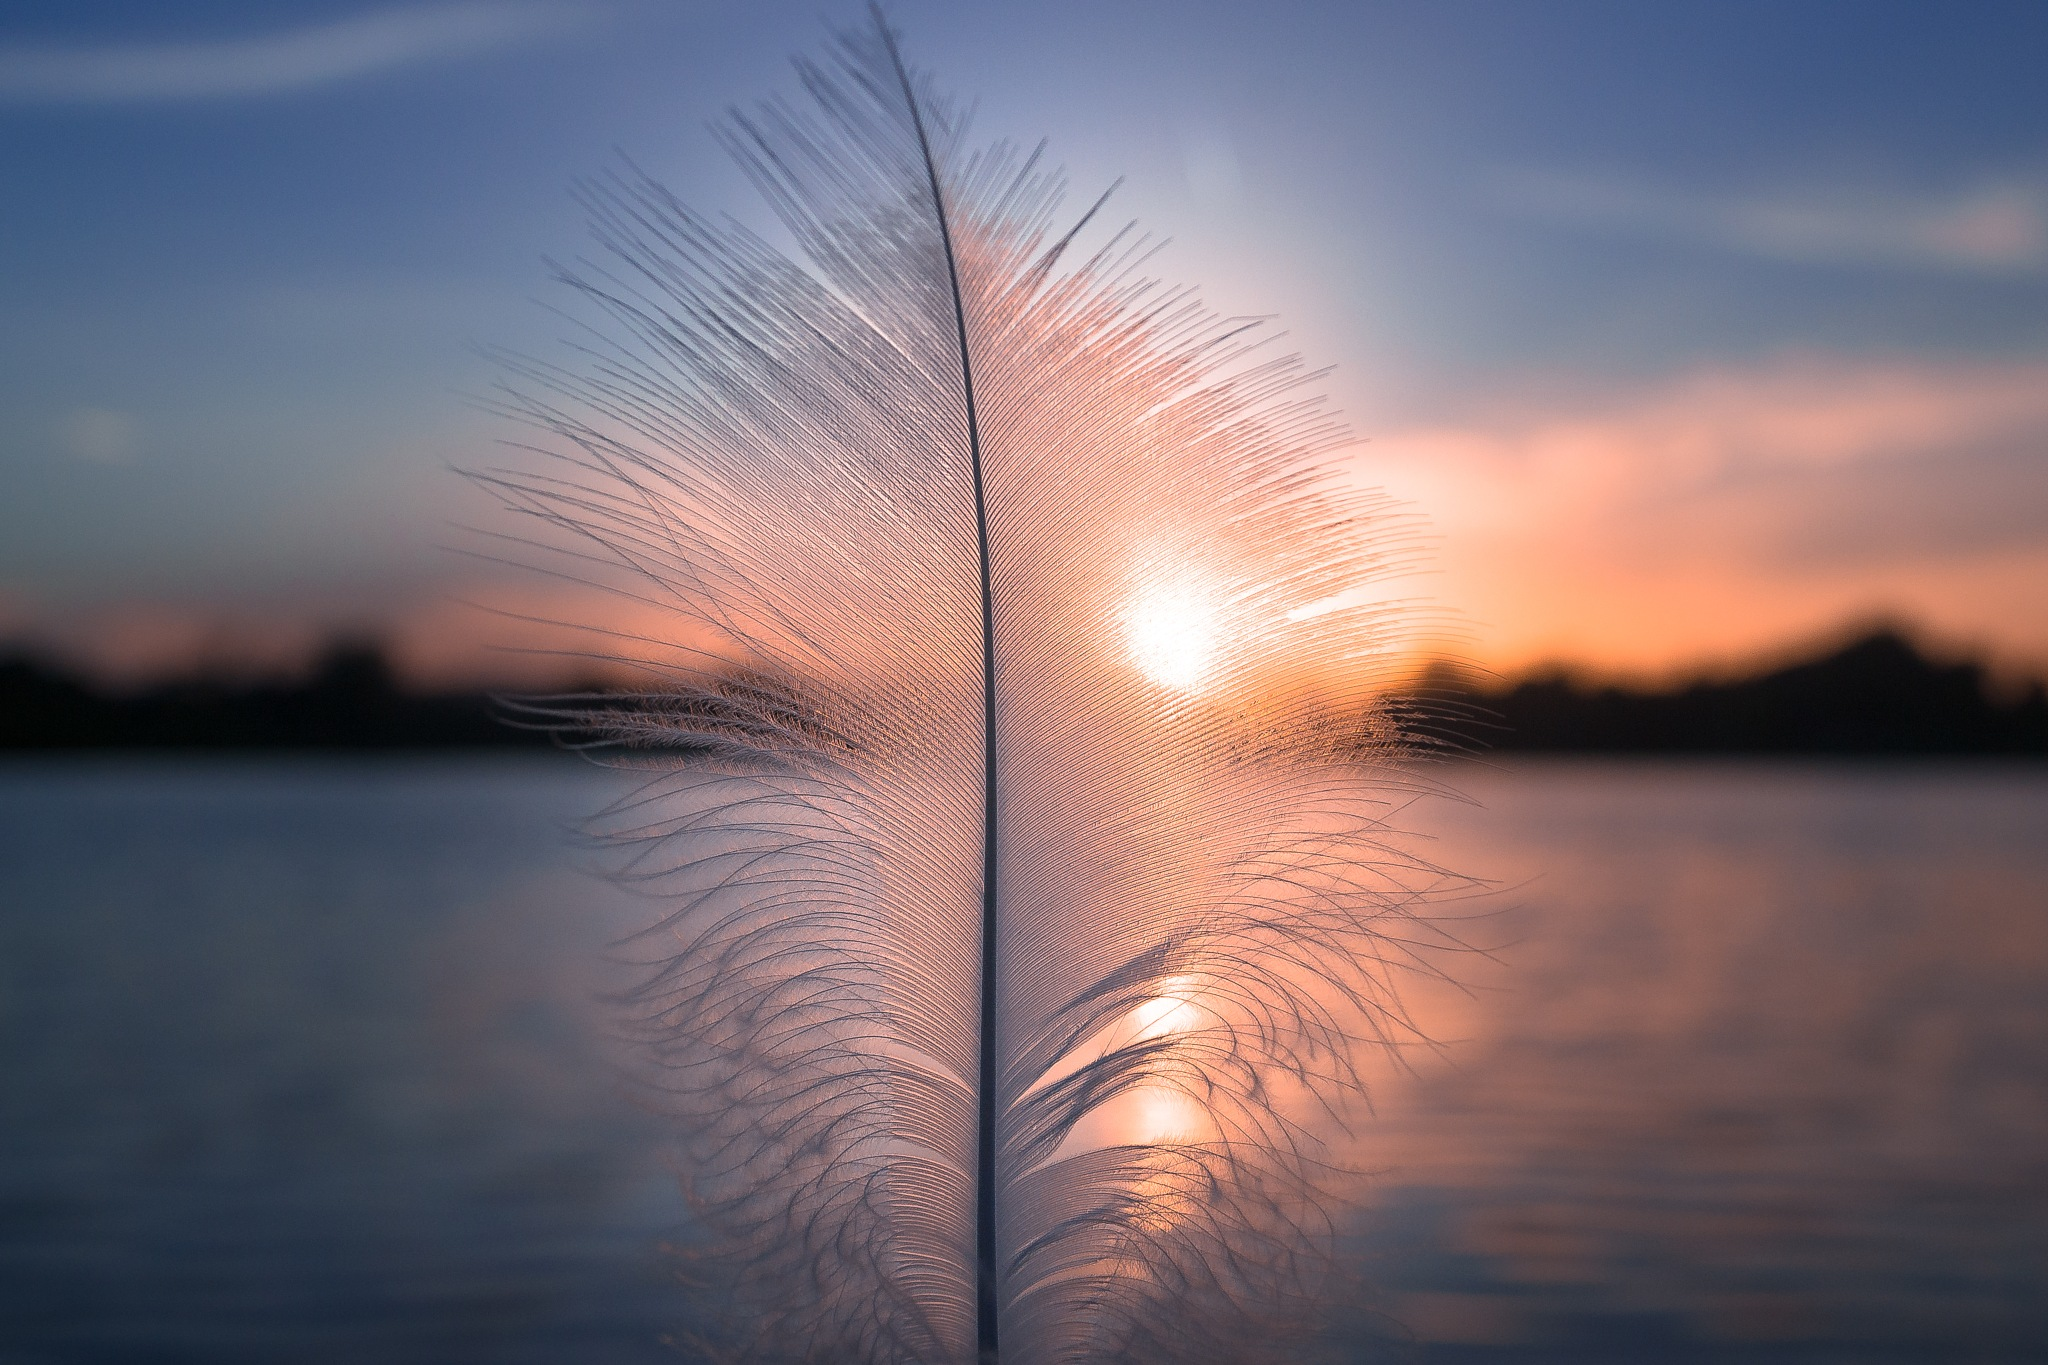 Sunny Feather by AK Photography